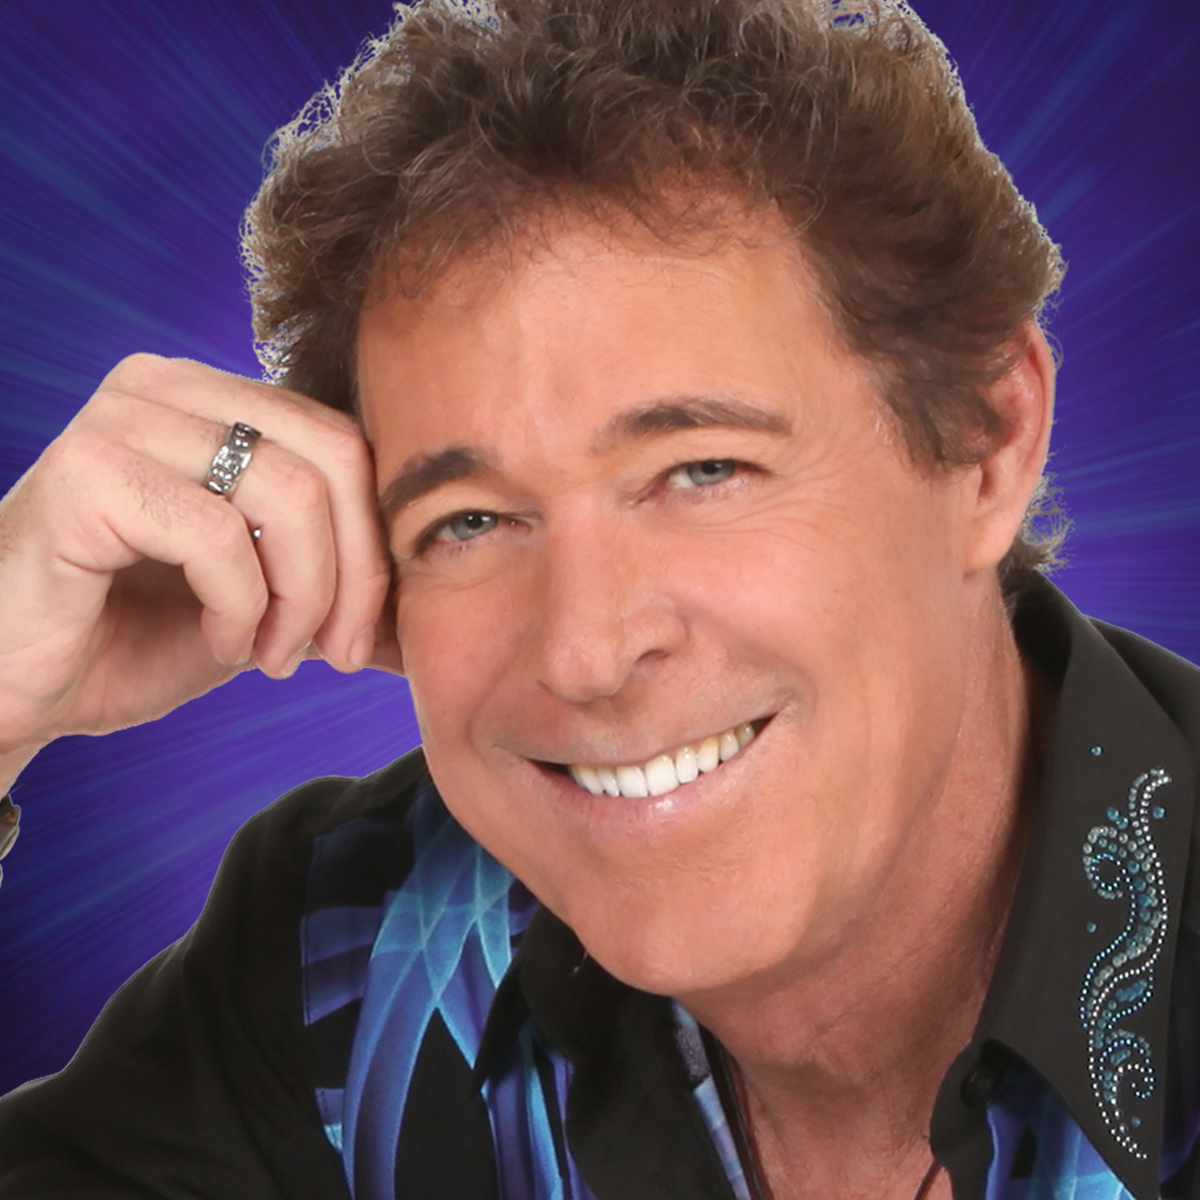 Catching up with Greg Brady: My Conversation with Barry Williams